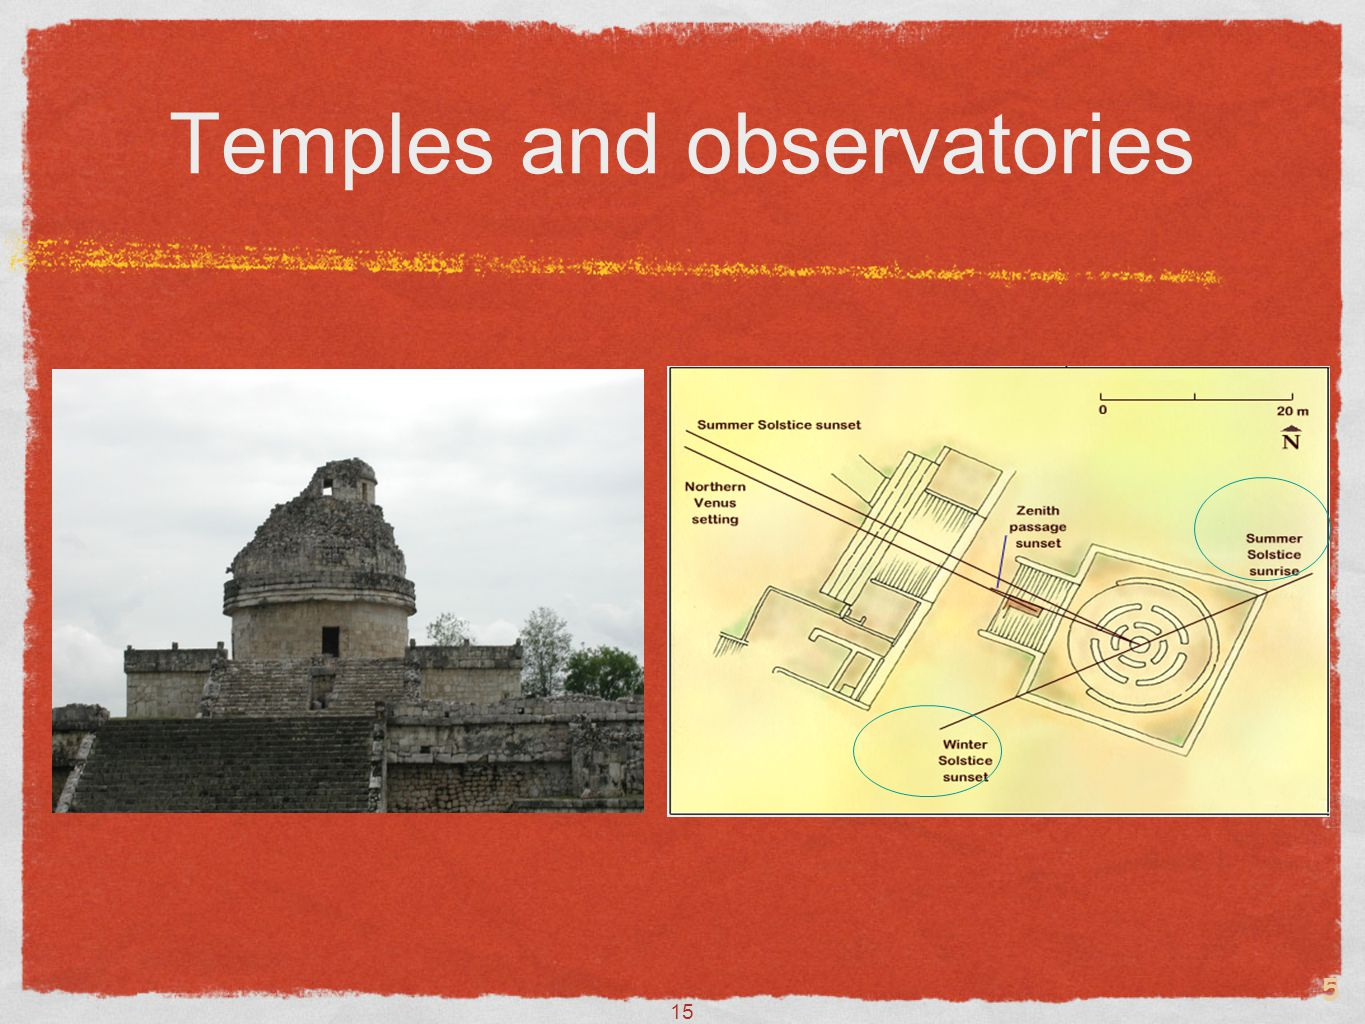 Temples and observatories